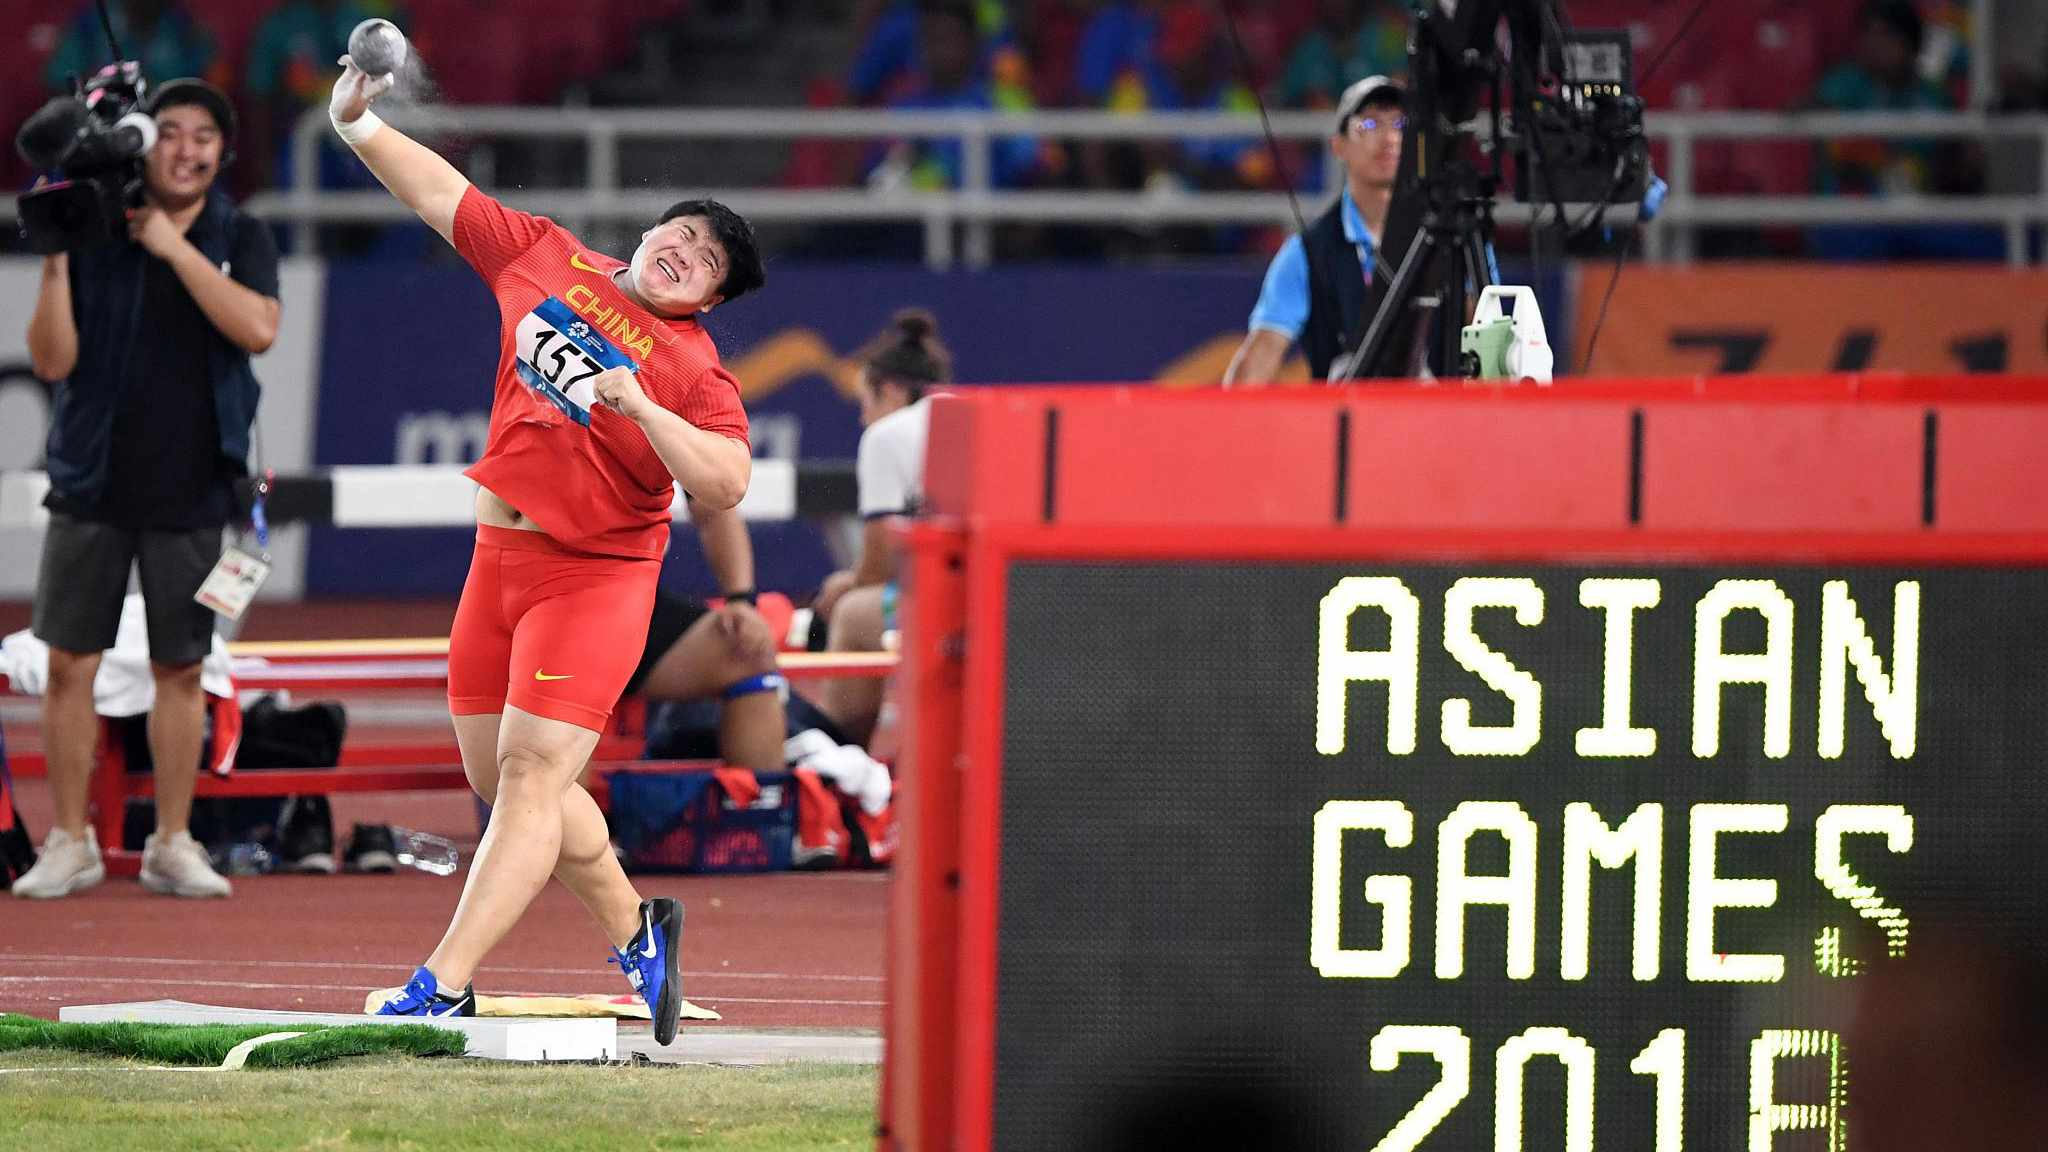 More weight, more golds: China's shot-putter champion's secret to victory at Asian Games